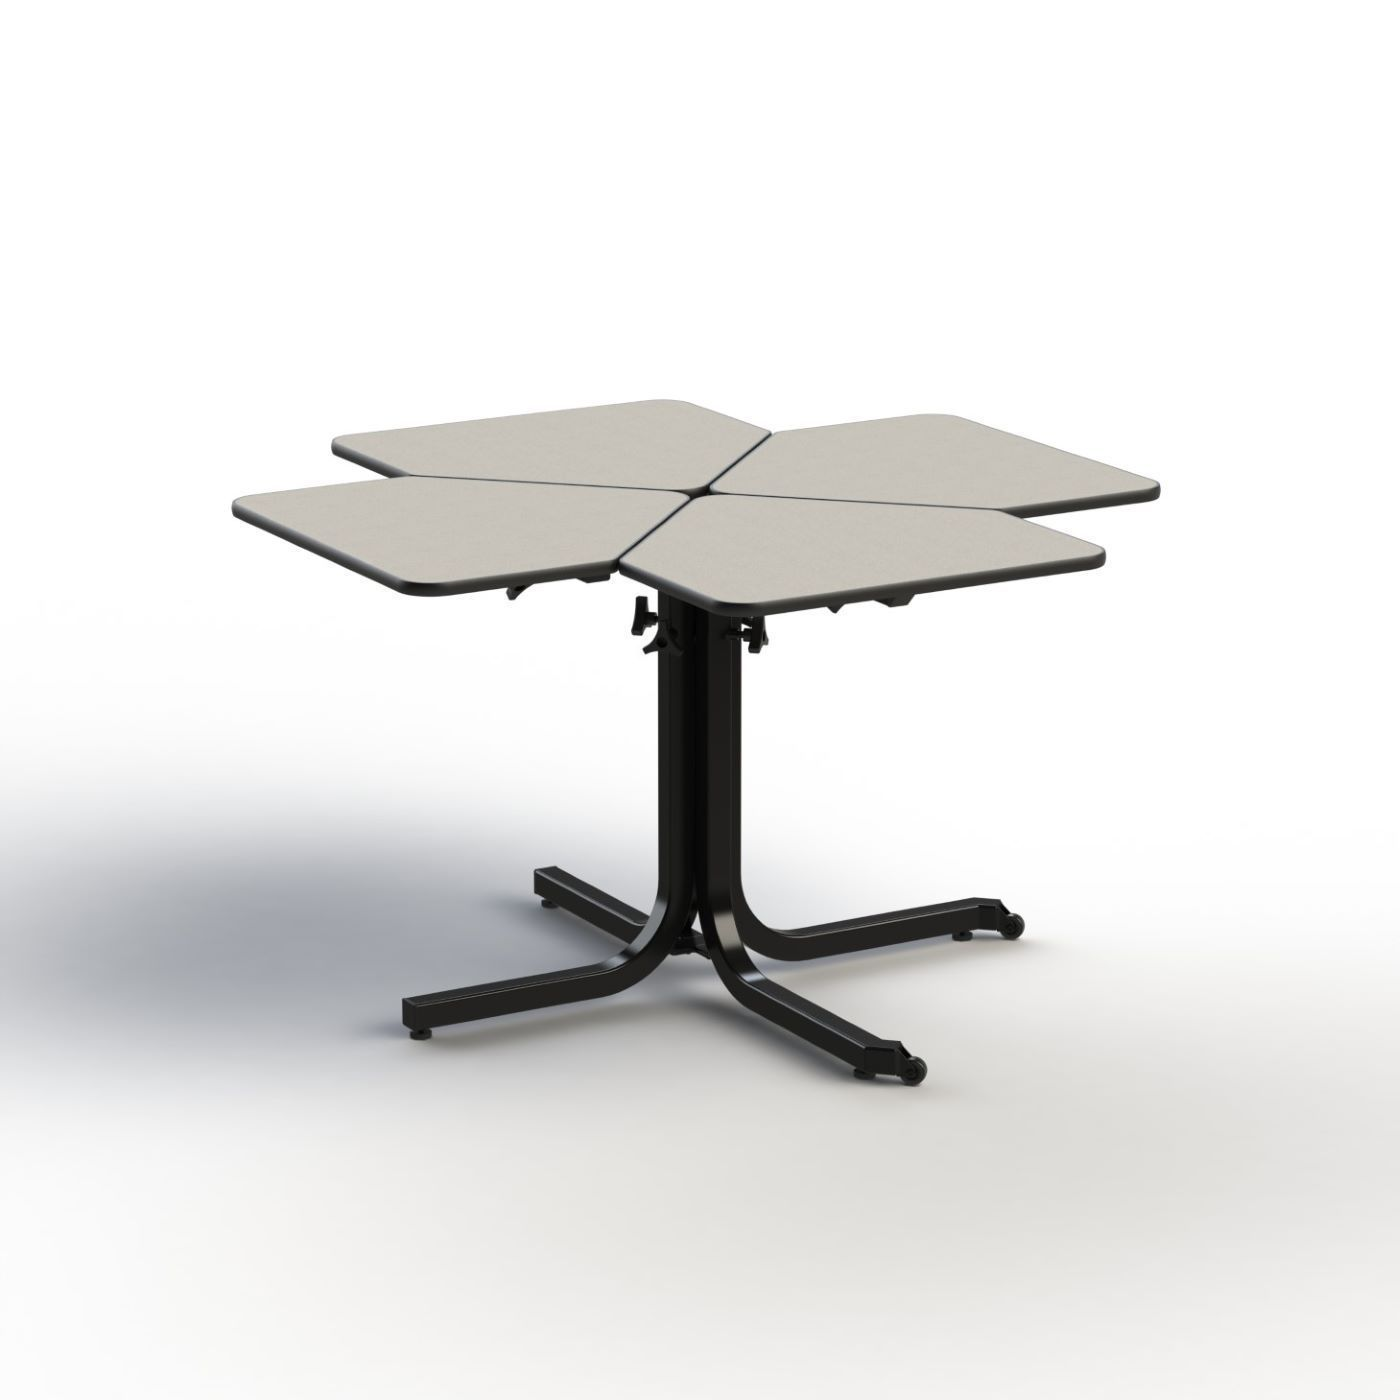 </b></font>WHEELCHAIR ACCESSIBLE ADJUSTABLE HEIGHT DINING TABLE 4-PERSONS. VIDEO. MODEL #BFL4-41. SAVE MONEY W/FREE SHIPPING. NO TAX OUTSIDE TEXAS:</b></font>  VIDEO BELOW. <p>RATING:&#11088;&#11088;&#11088;&#11088;&#11088;</b></font></b>